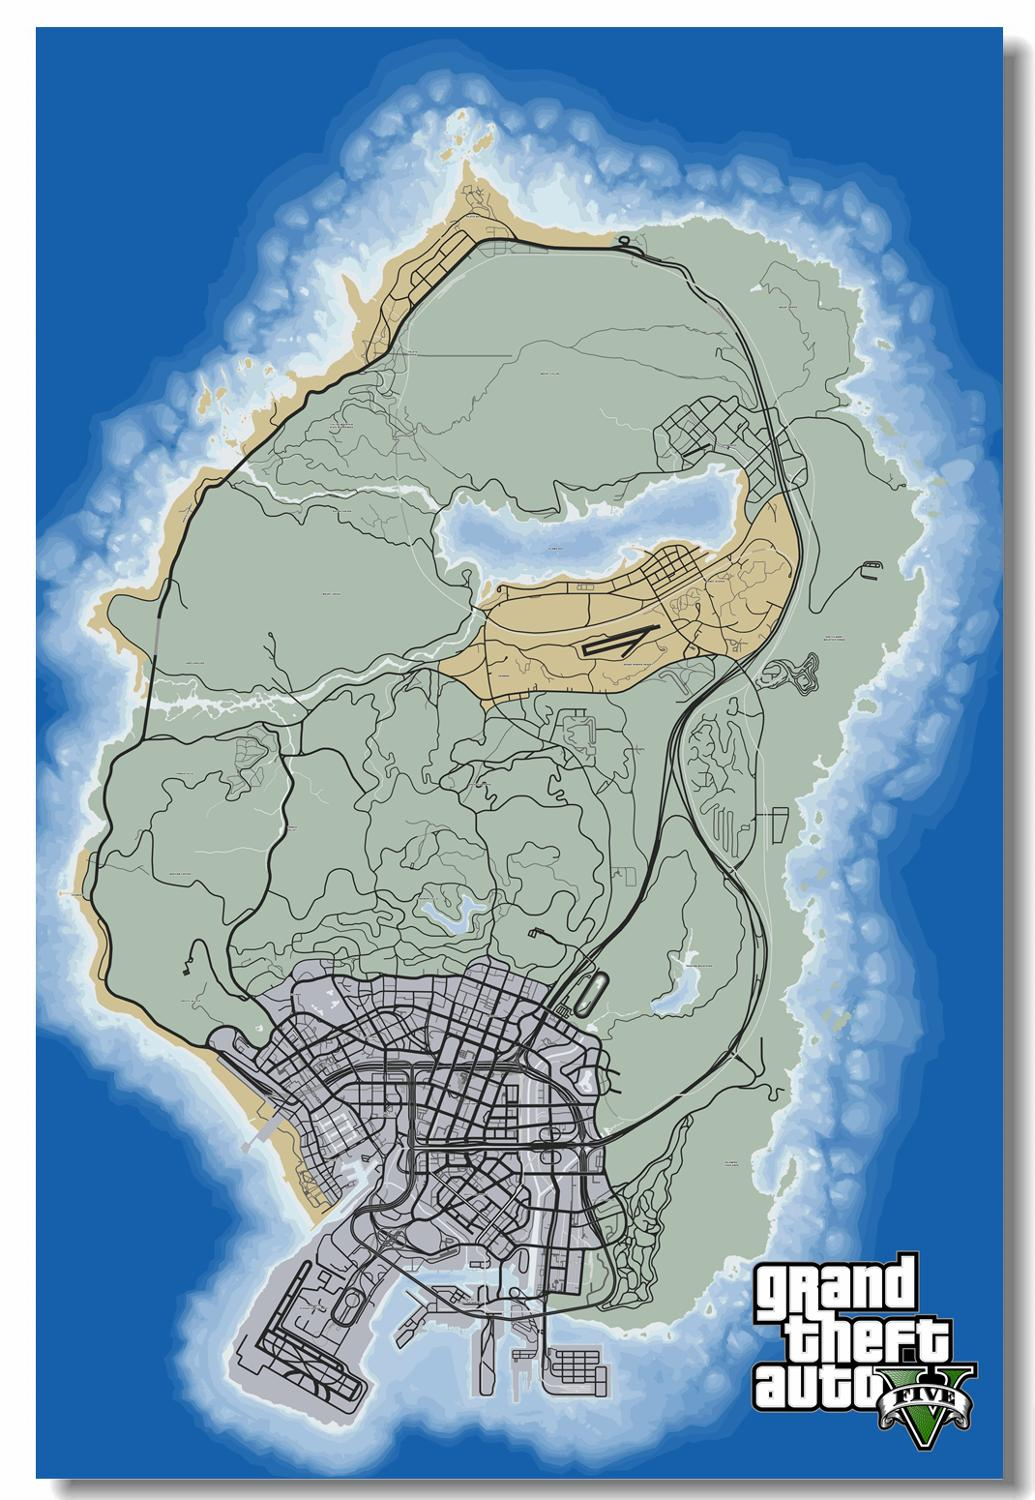 Us 68 Gta San Andreas Poster Gta San Andreas Wallpapers Custom Game Map Wall Sticker Grand Theft Auto V Stickers Home Decor Pn2421 In Wall